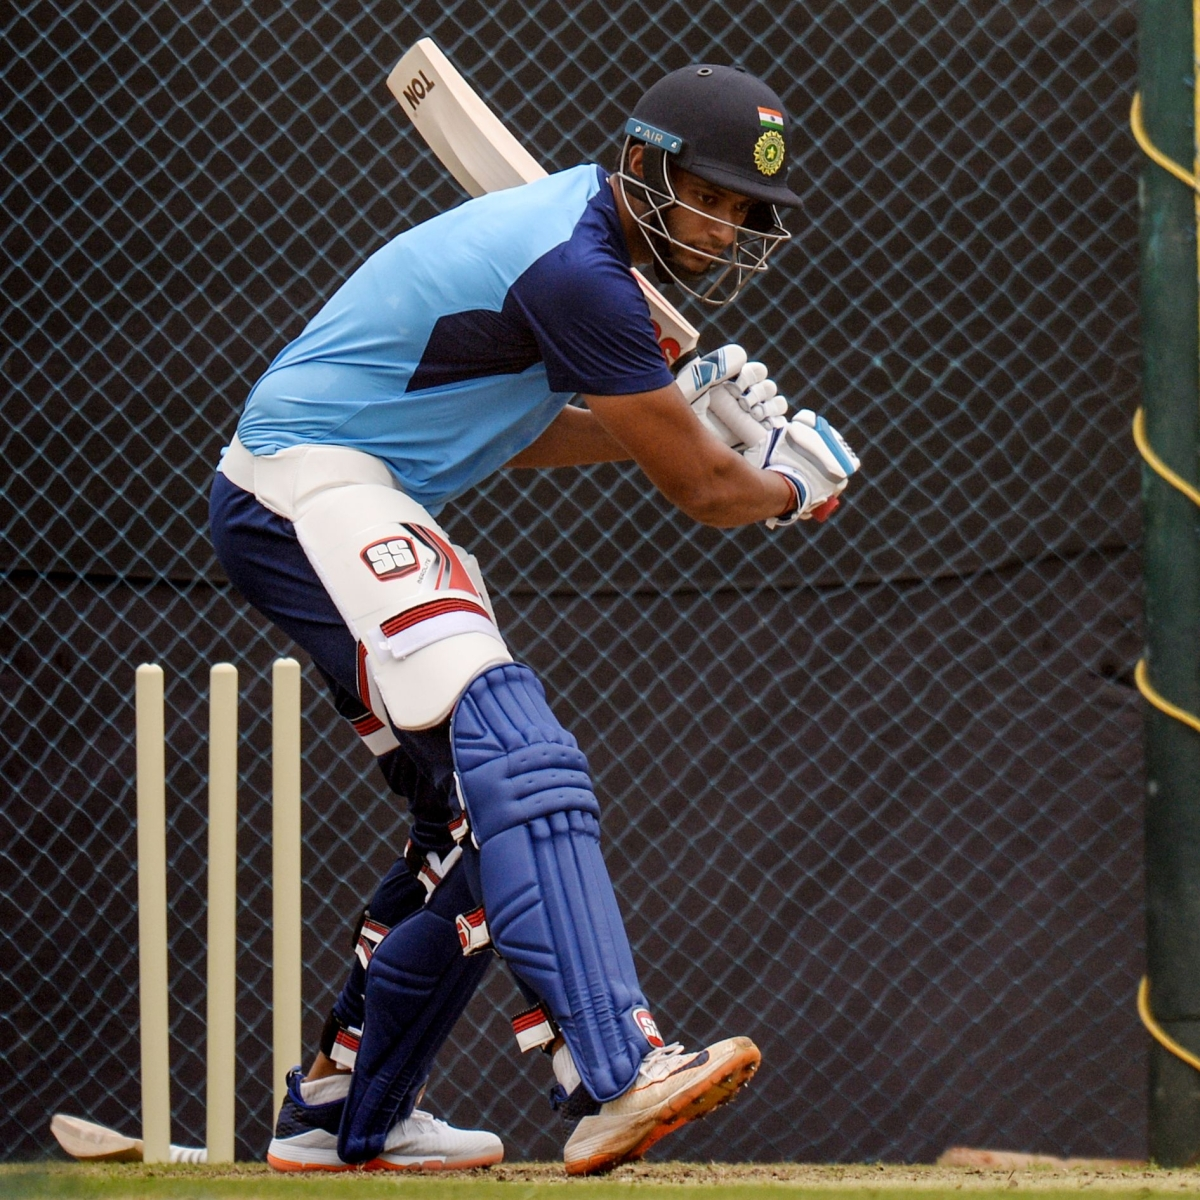 Shivam Dube will get better as an all-rounder as he gains more confidence, says Bharat Arun